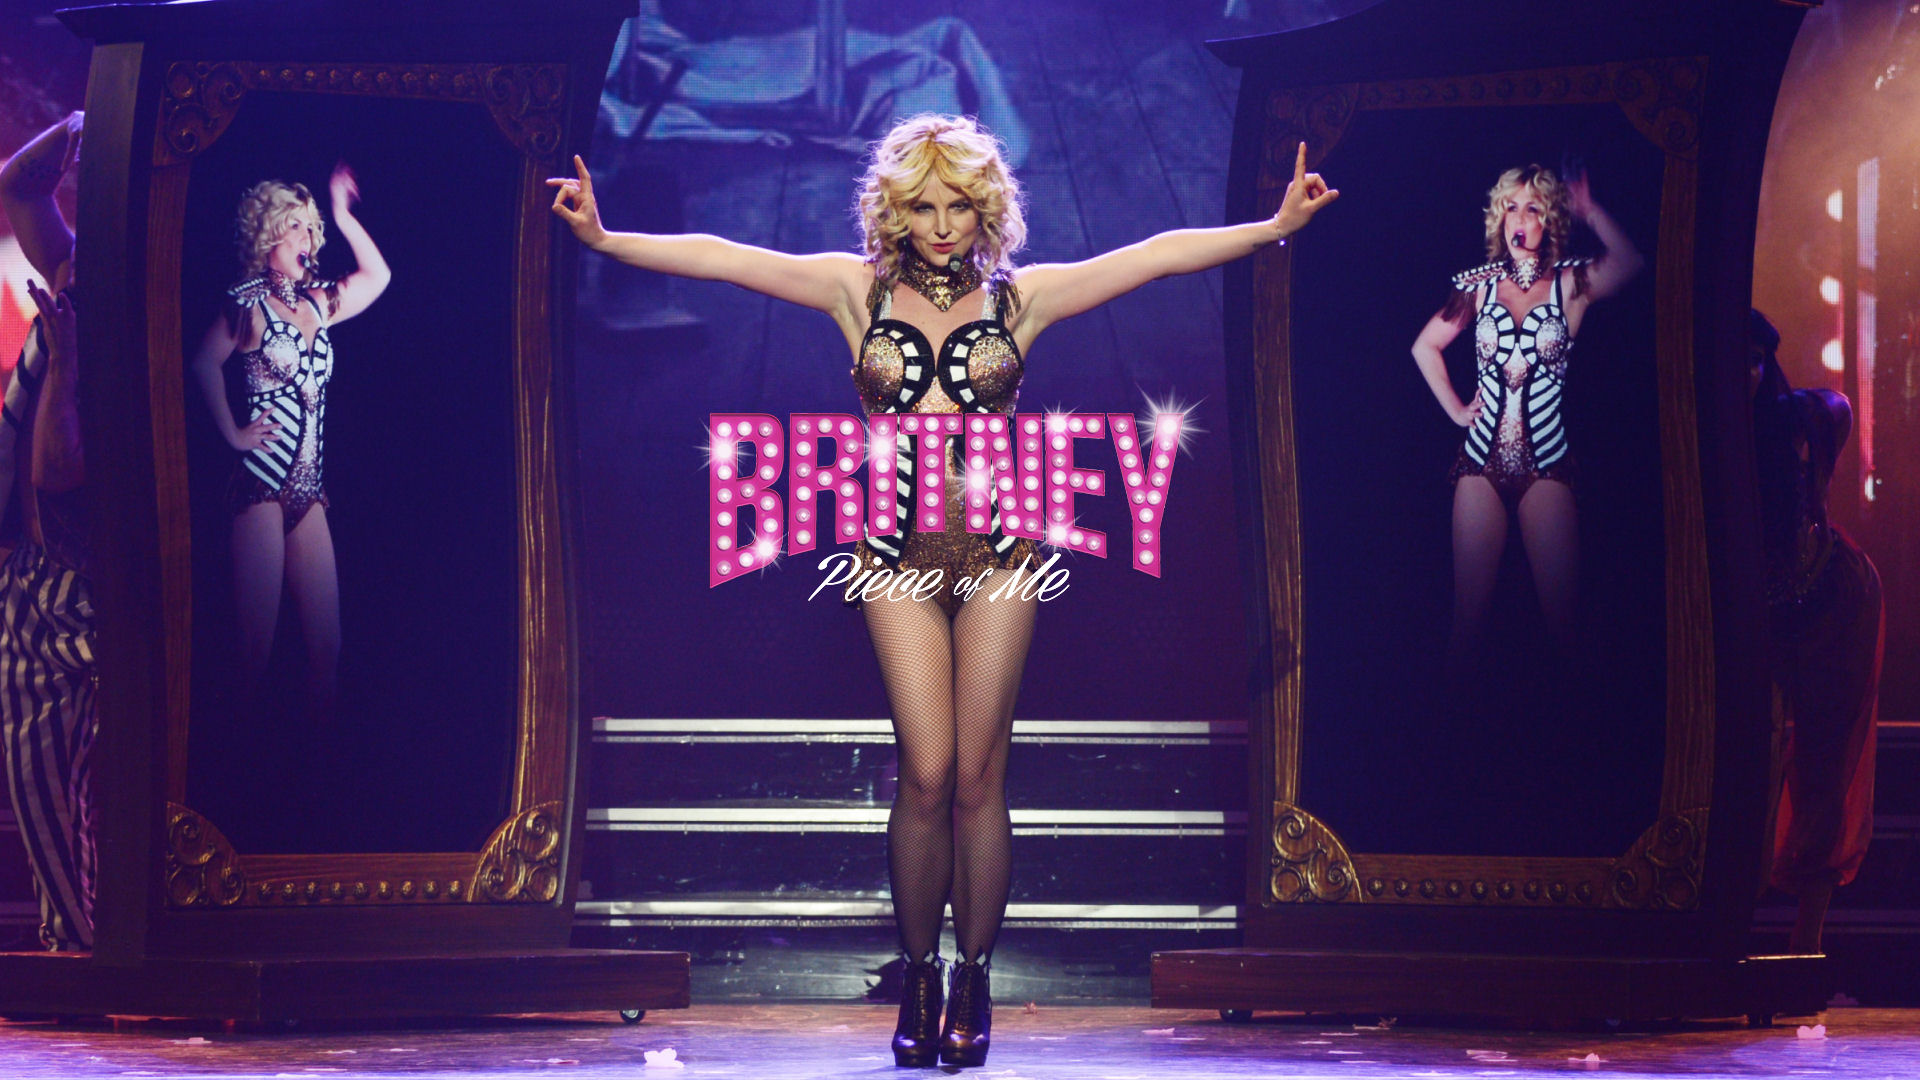 Britney Spears Piece of Me